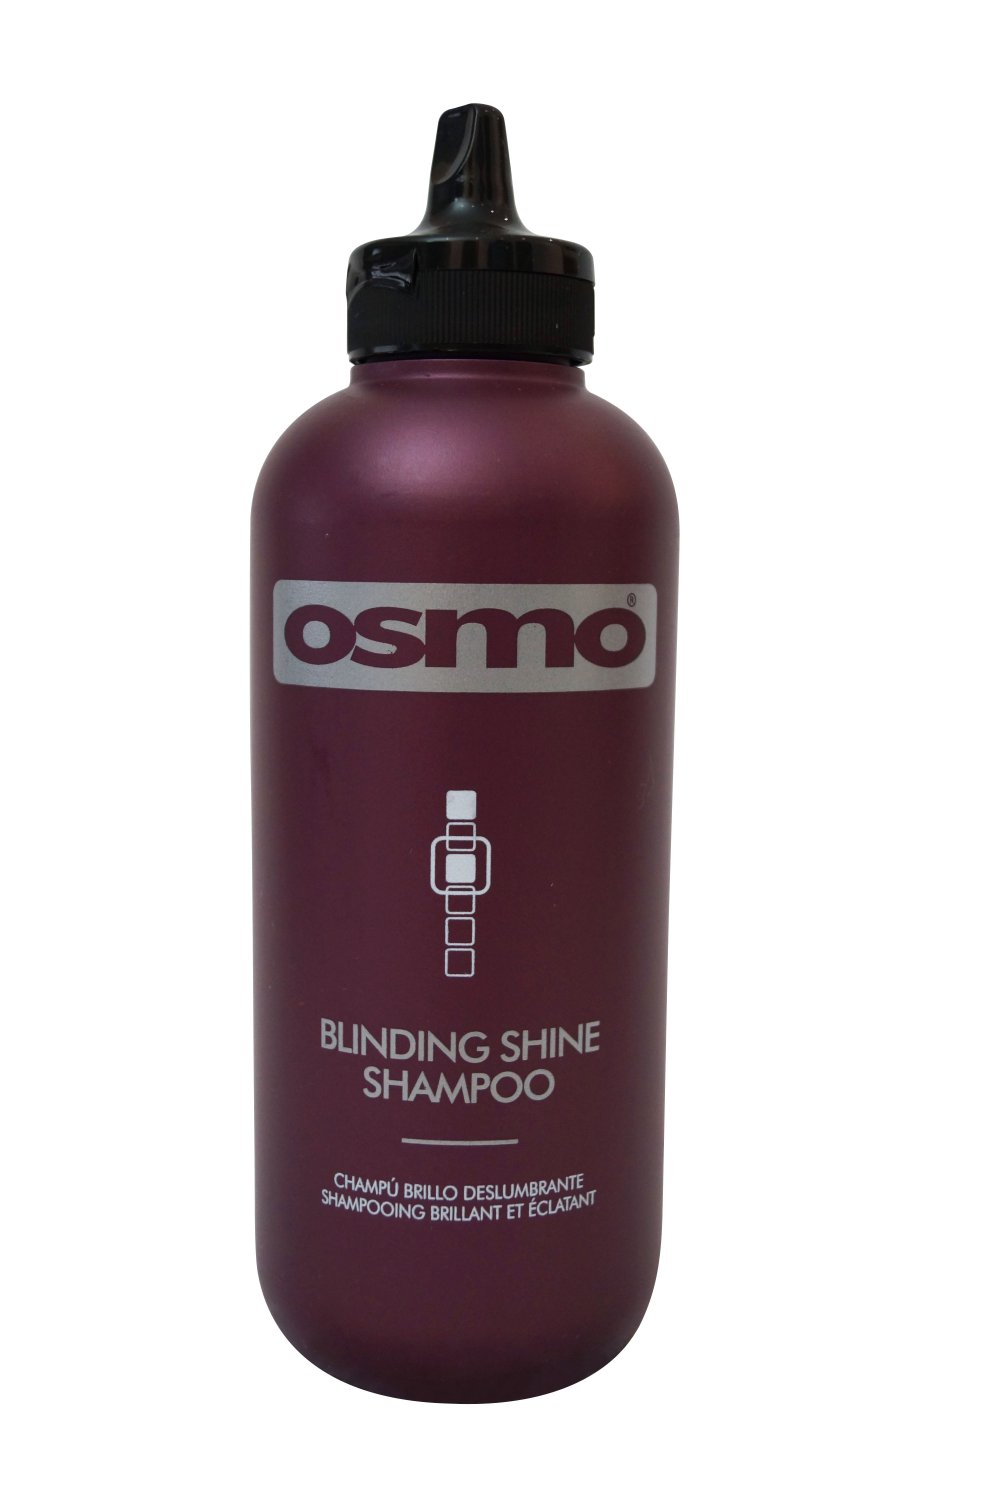 Osmo Blinding Shine Shampoo 350 ml 11.8 oz